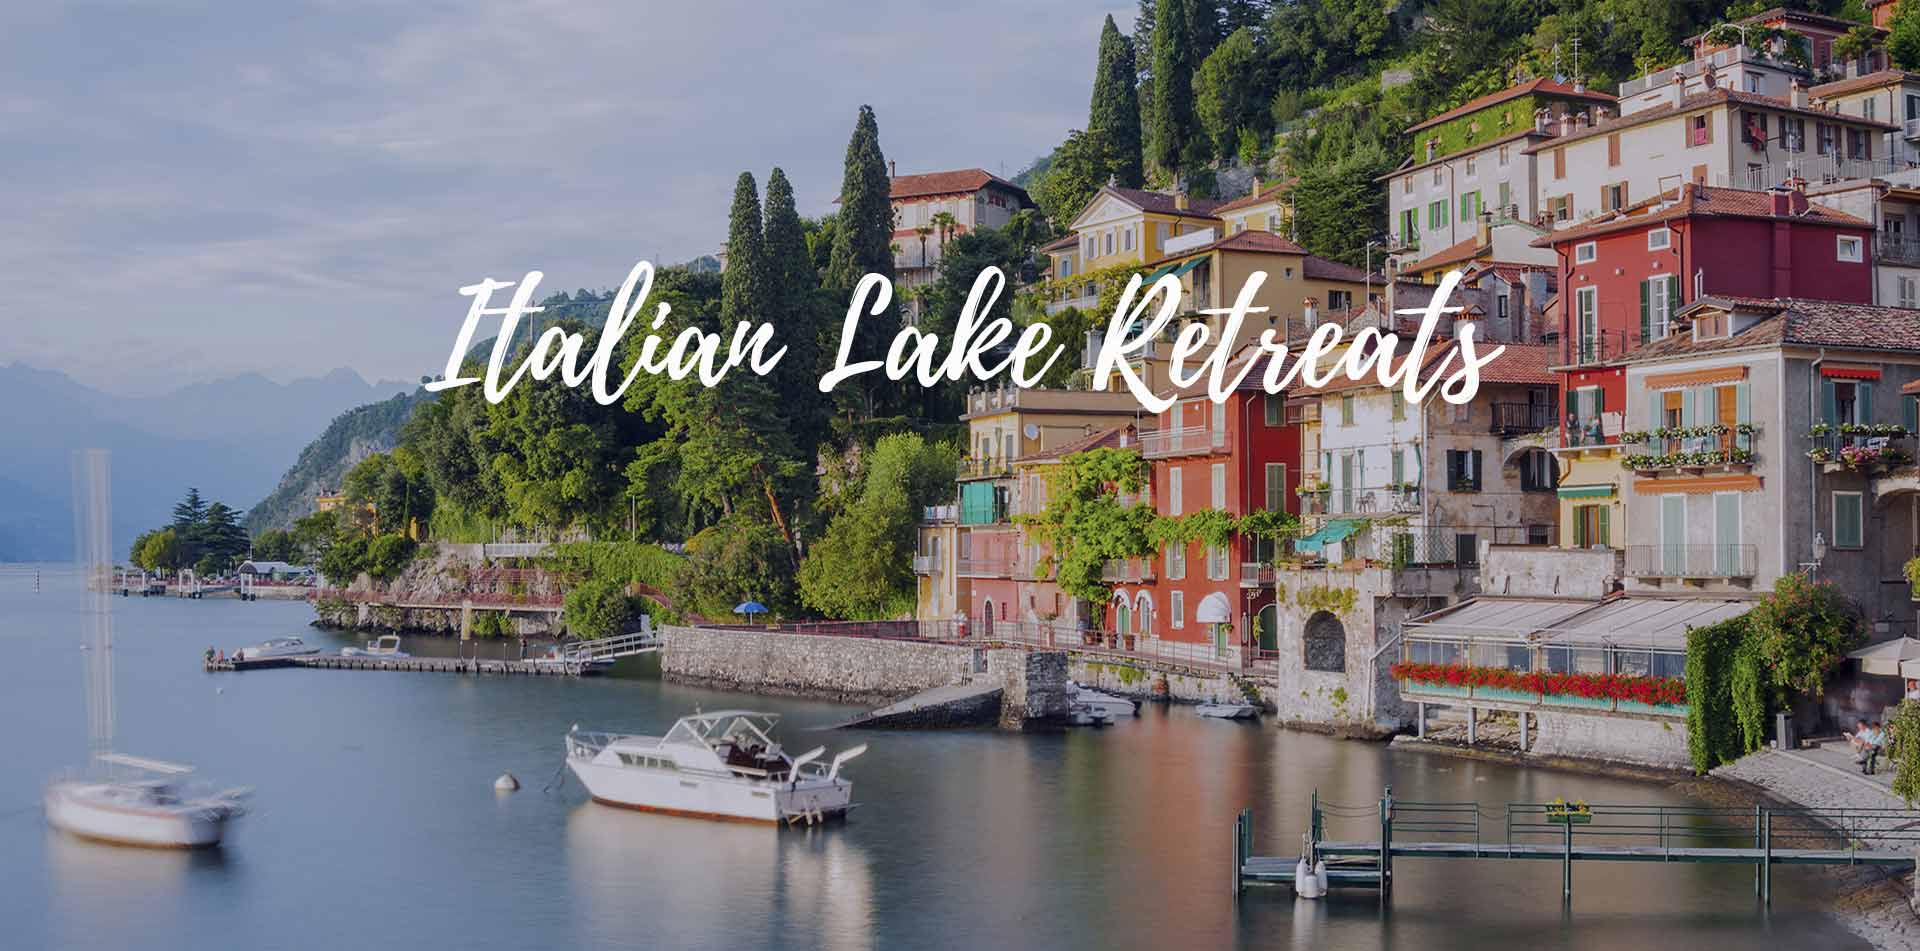 Europe Italian Lake Retreats Menaggio scenic town boats historic colorful houses lush hillside - luxury vacation destinations